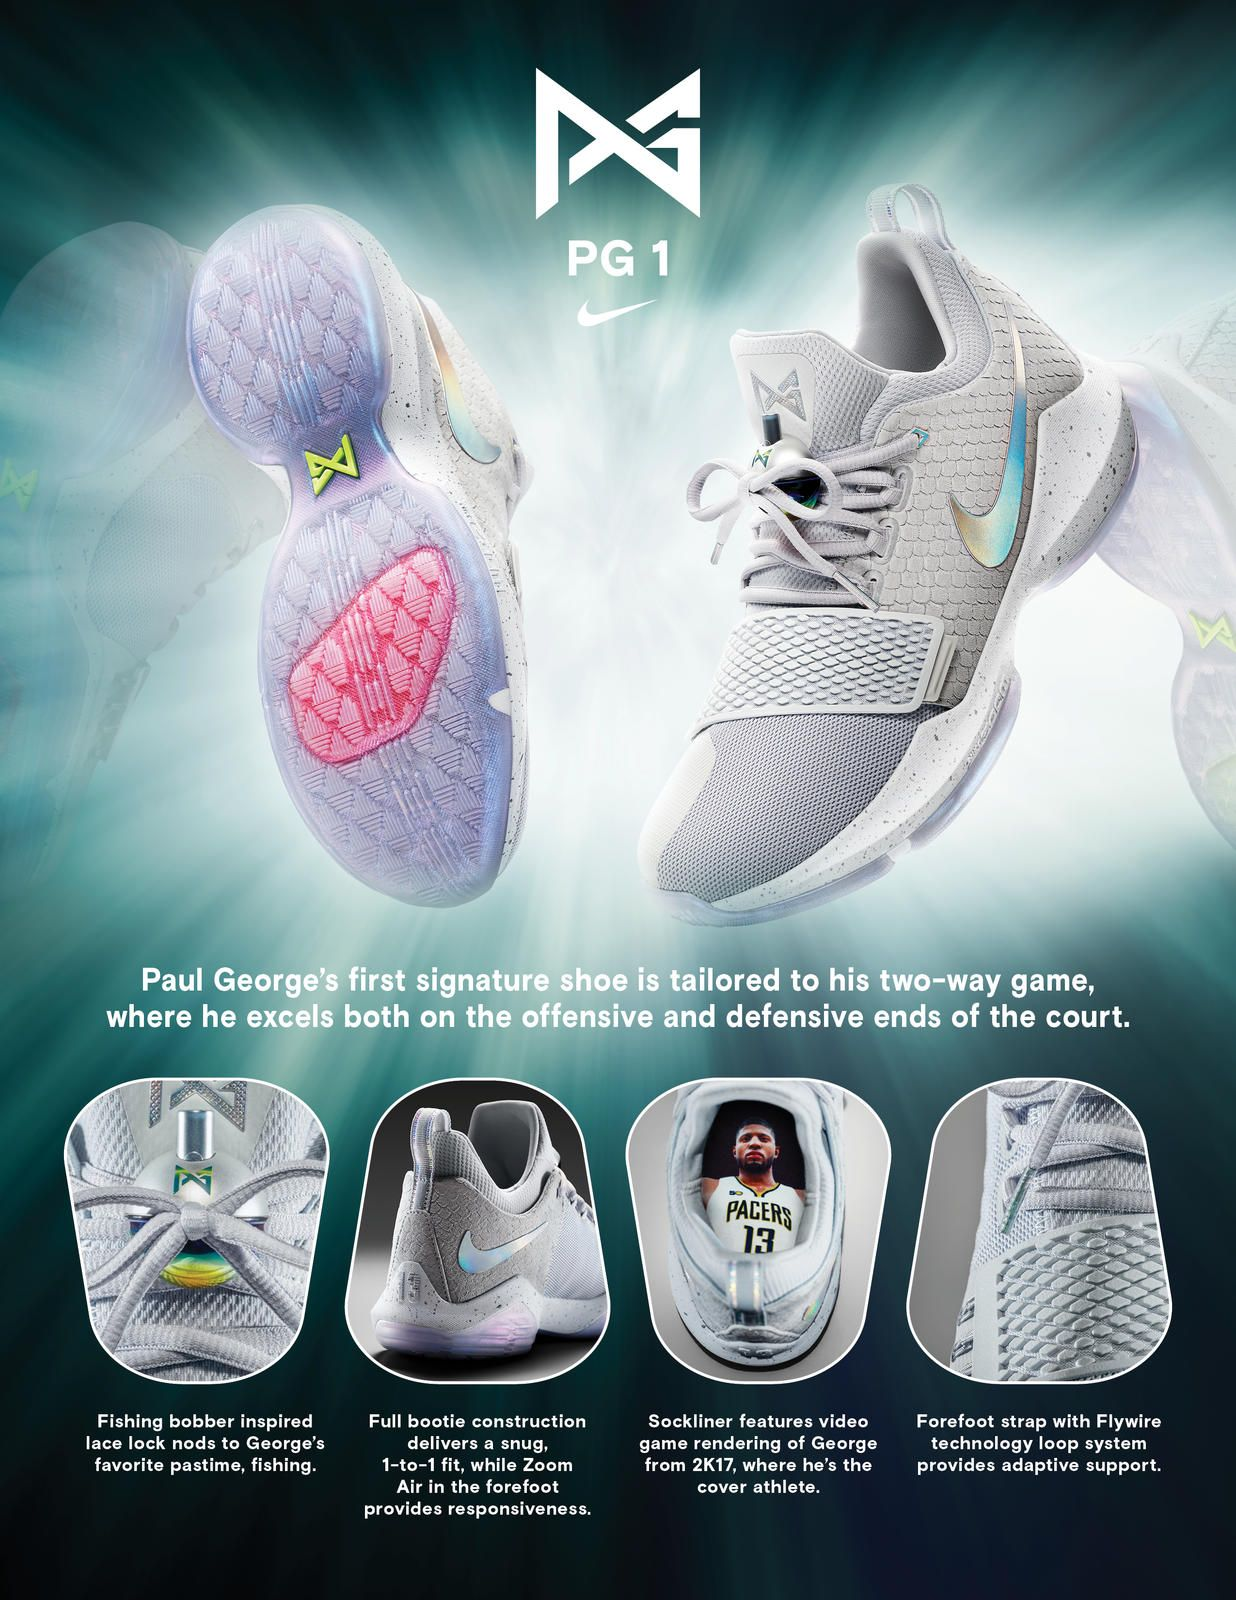 413bcb541b583 Nike News - PG1 Reflects Paul George s Versatility on Both Sides of the  Court